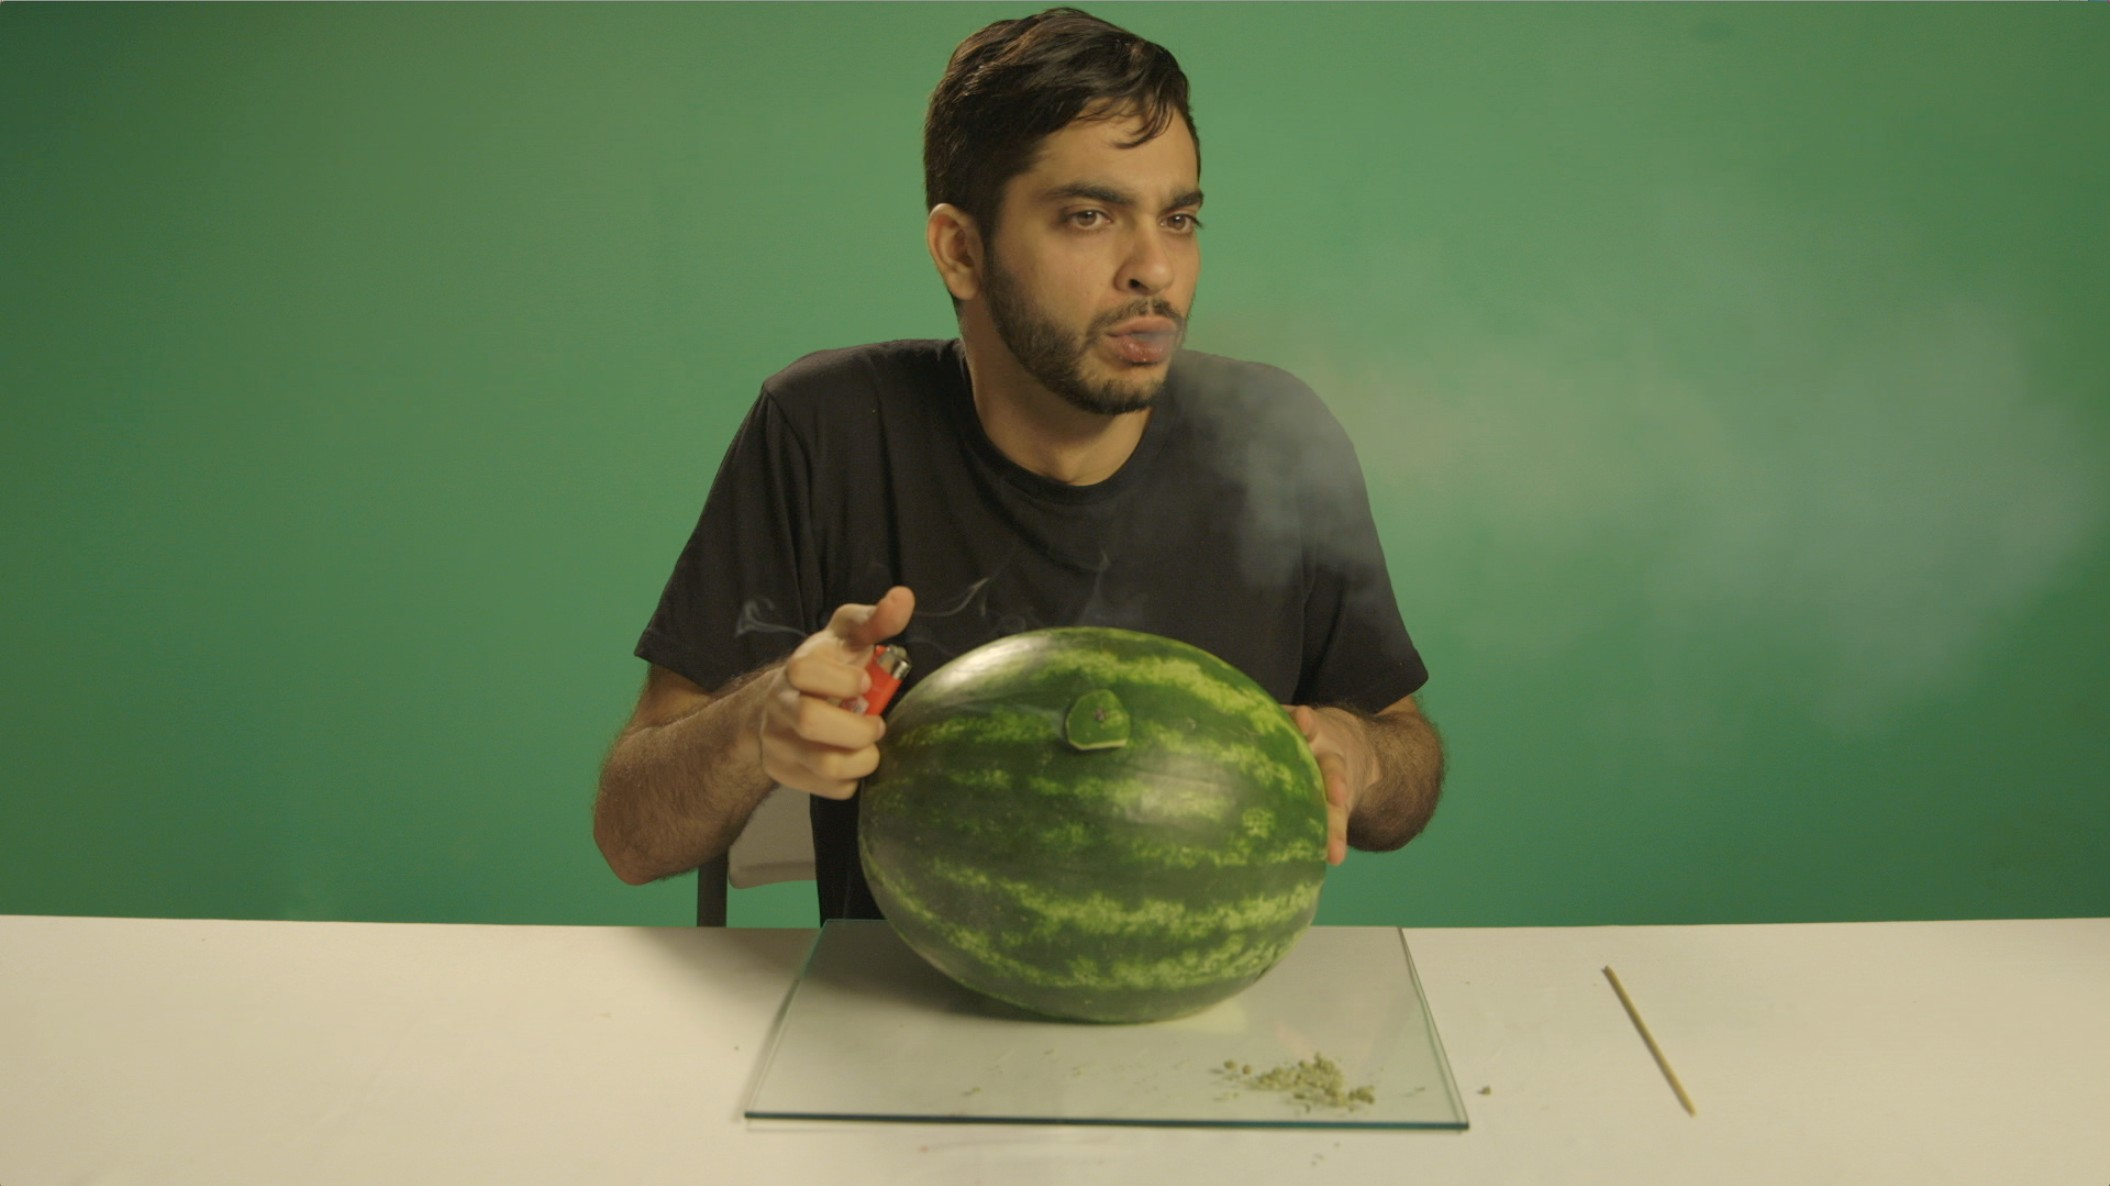 How to Make a Watermelon Bong